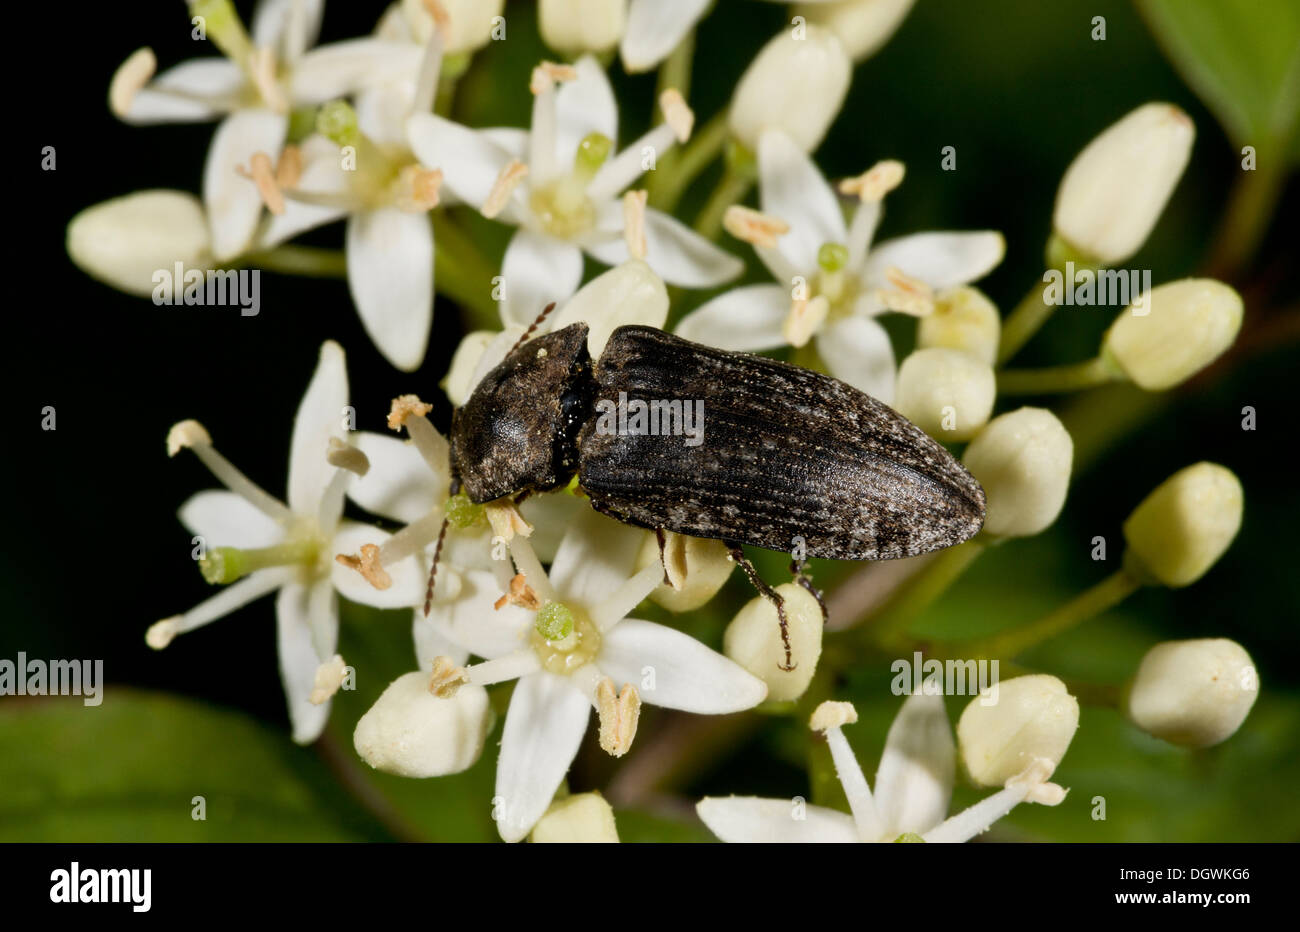 Chequered Click Beetle Prosternon tessellatum, feeding on pollen. Martin Down, Hampshire. - Stock Image